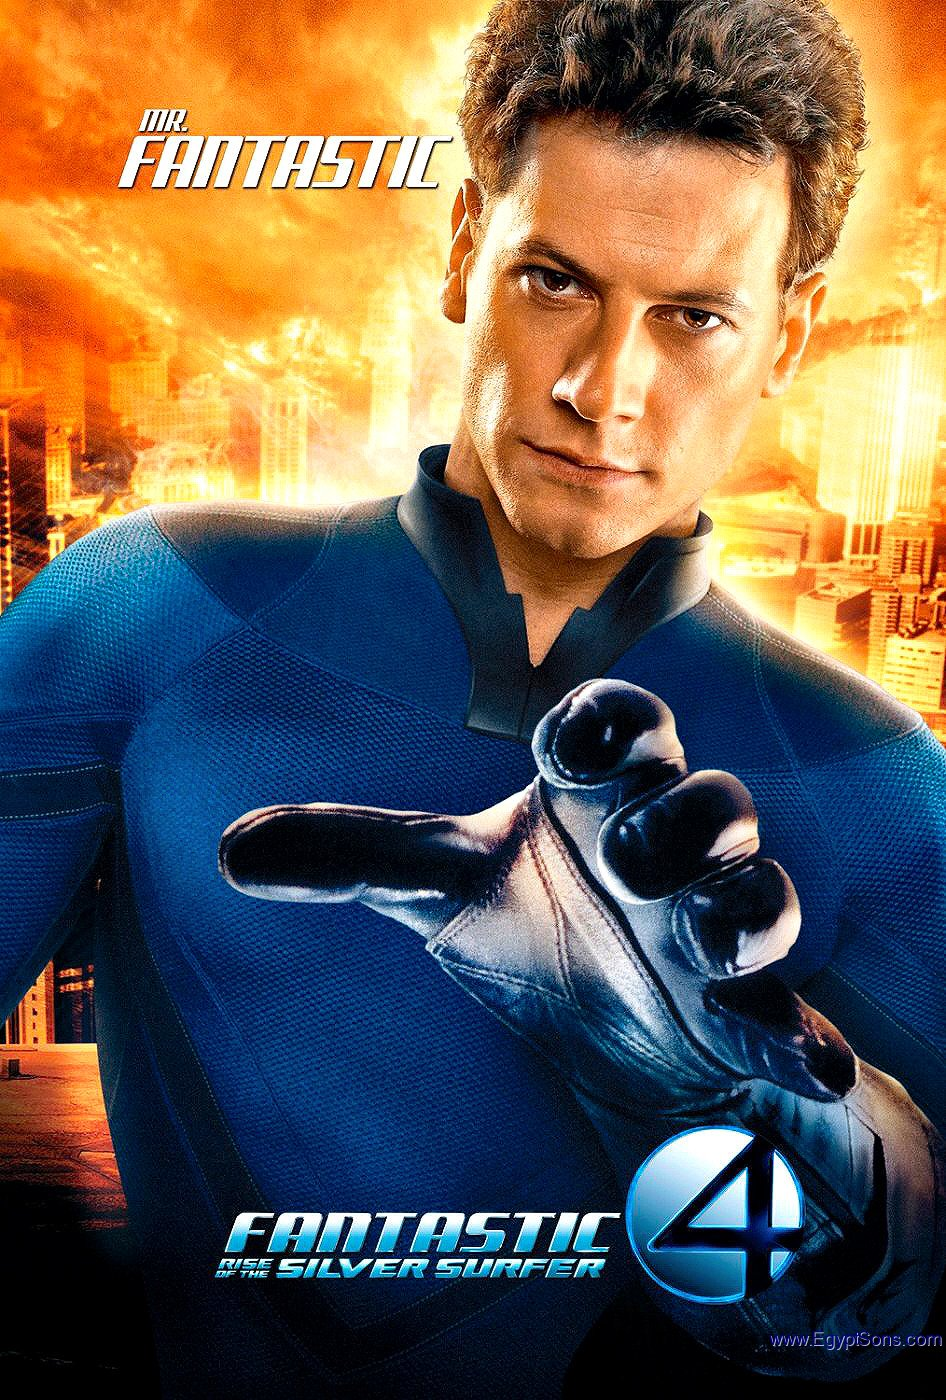 Mr. Fantastic in Fantastic Four Movies